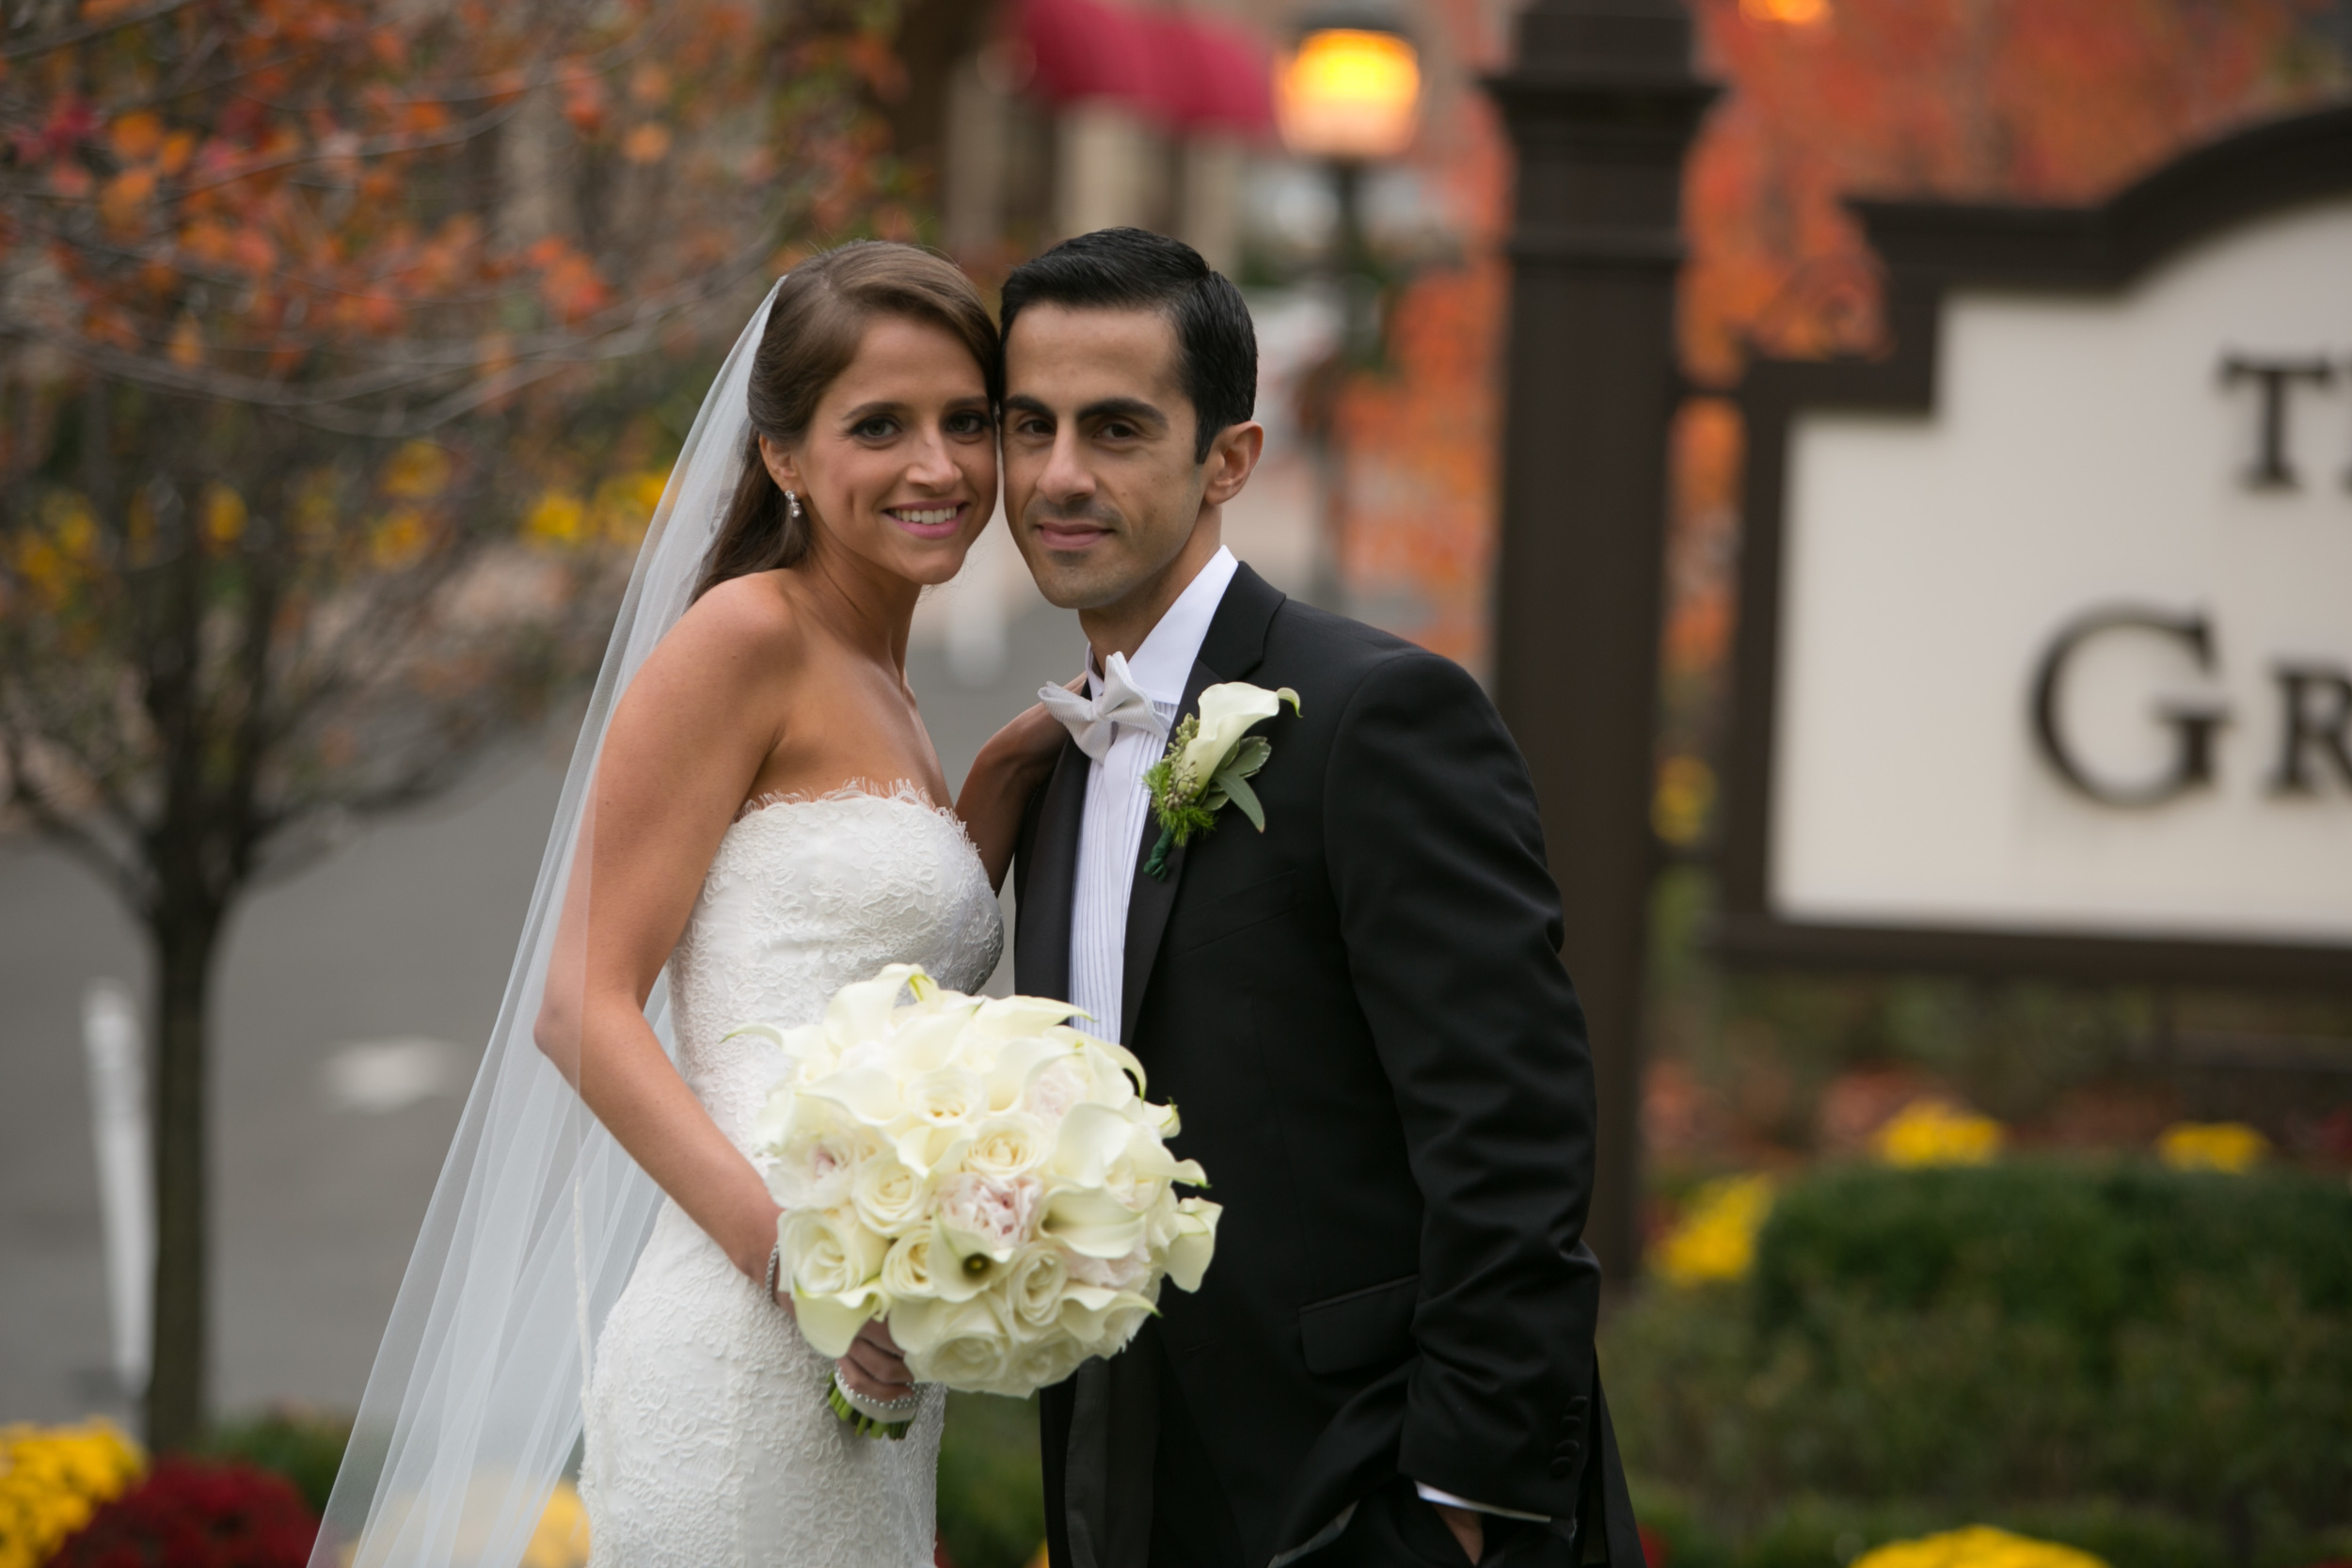 Kim & Alex's Wedding | The Grove | Magique Studios